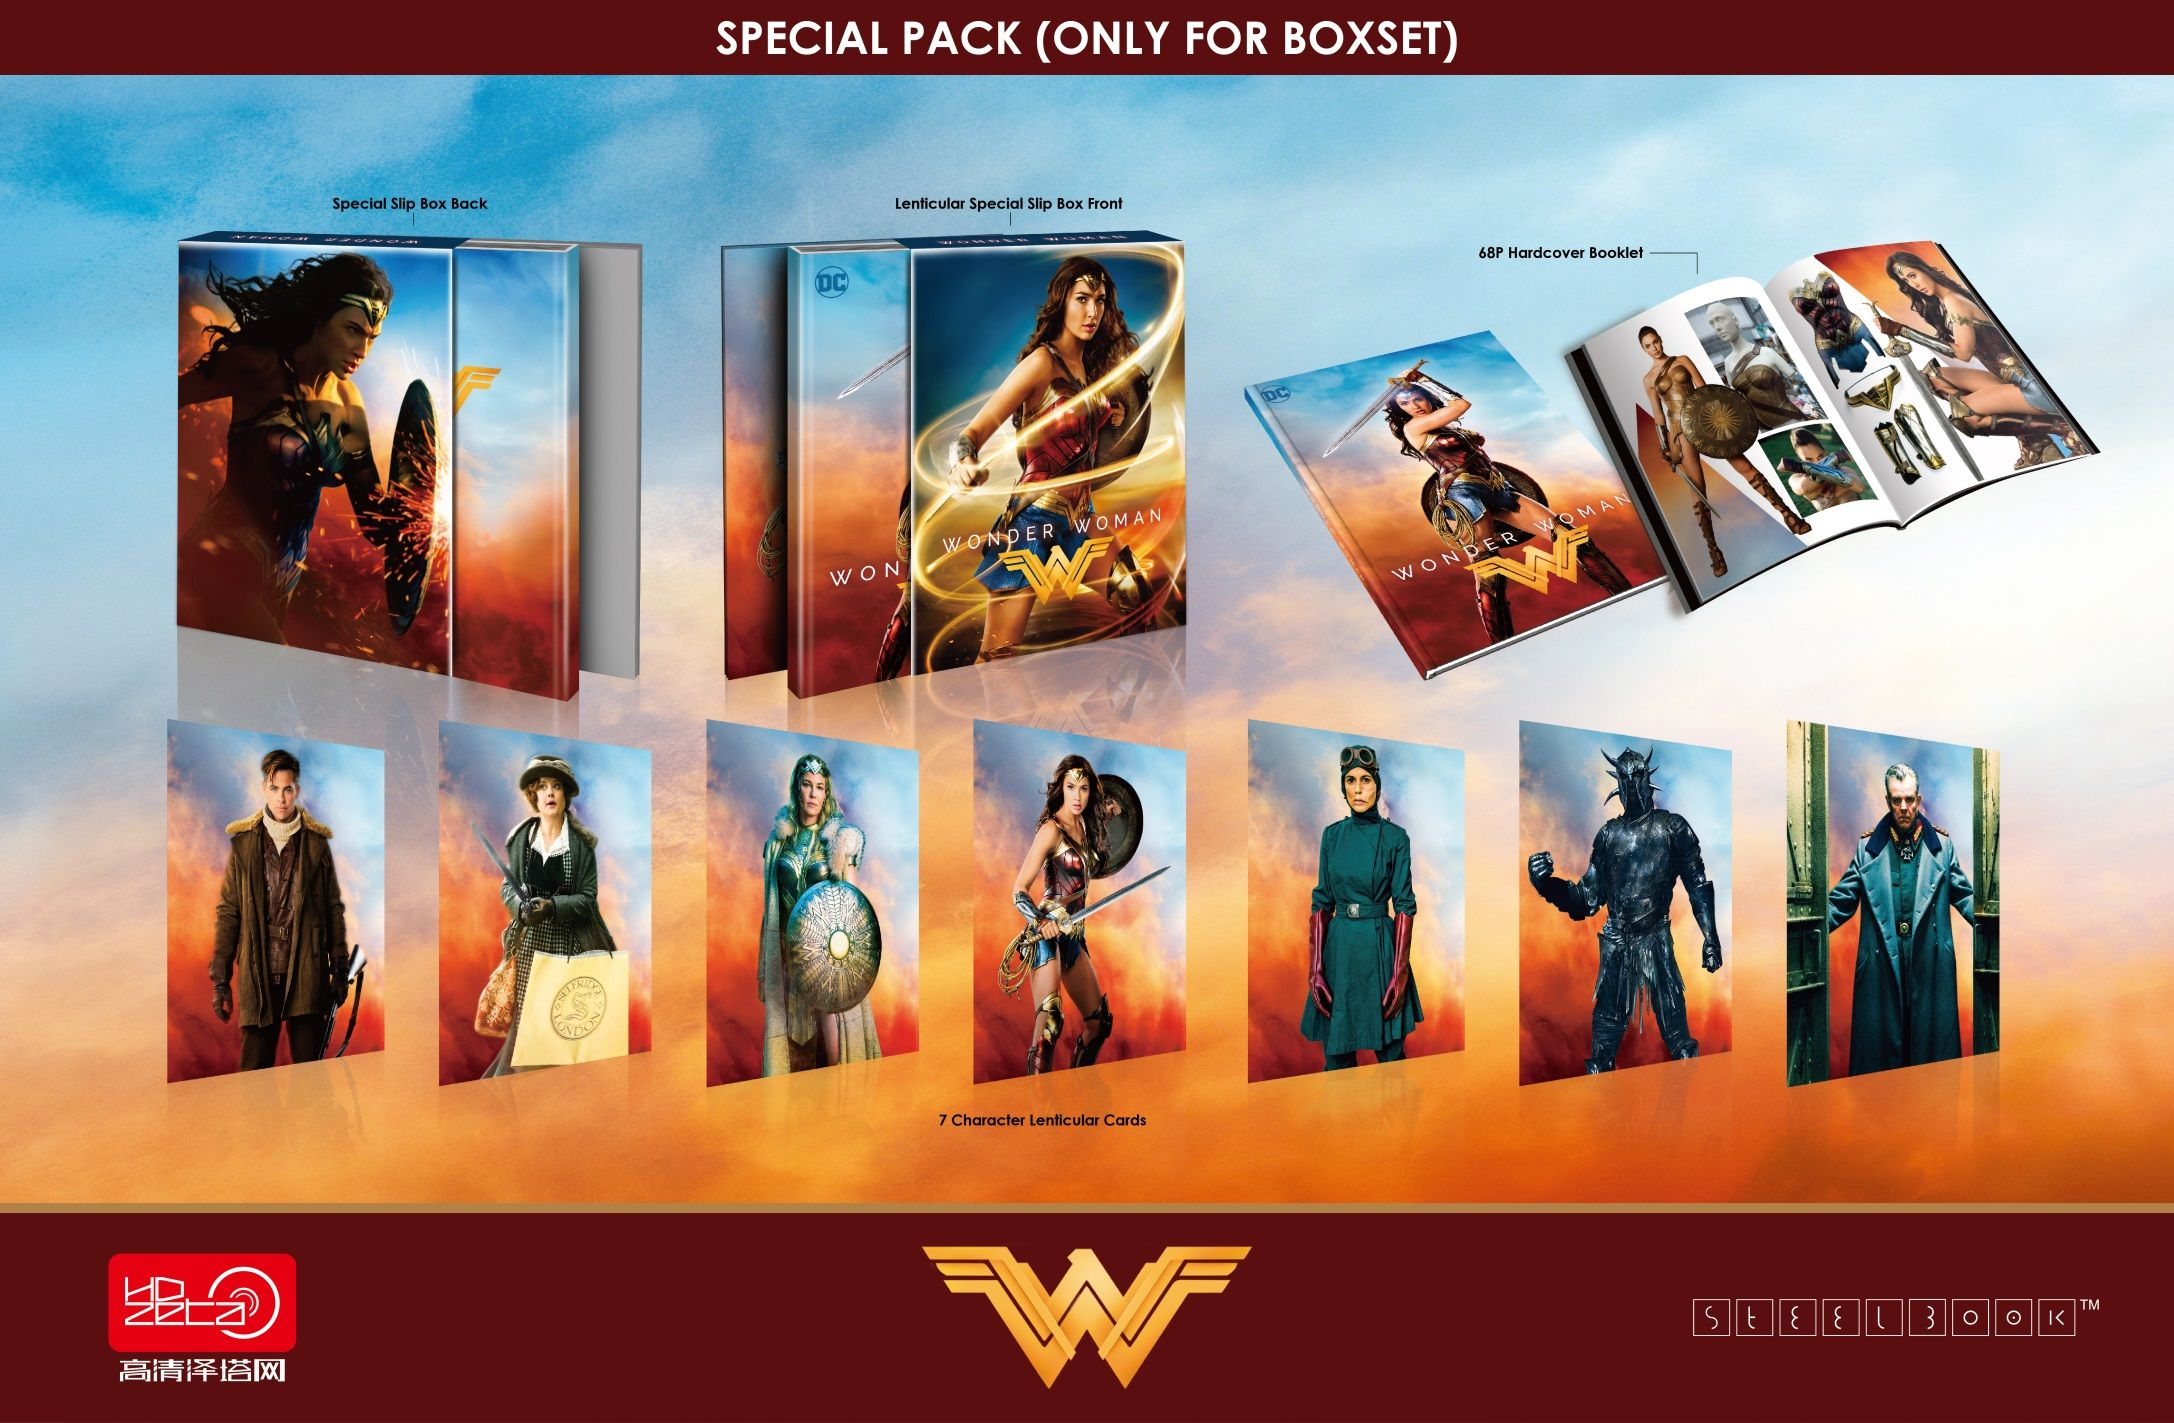 Wonder Woman Special Pack Edition 4k 3d 2d Blu Ray